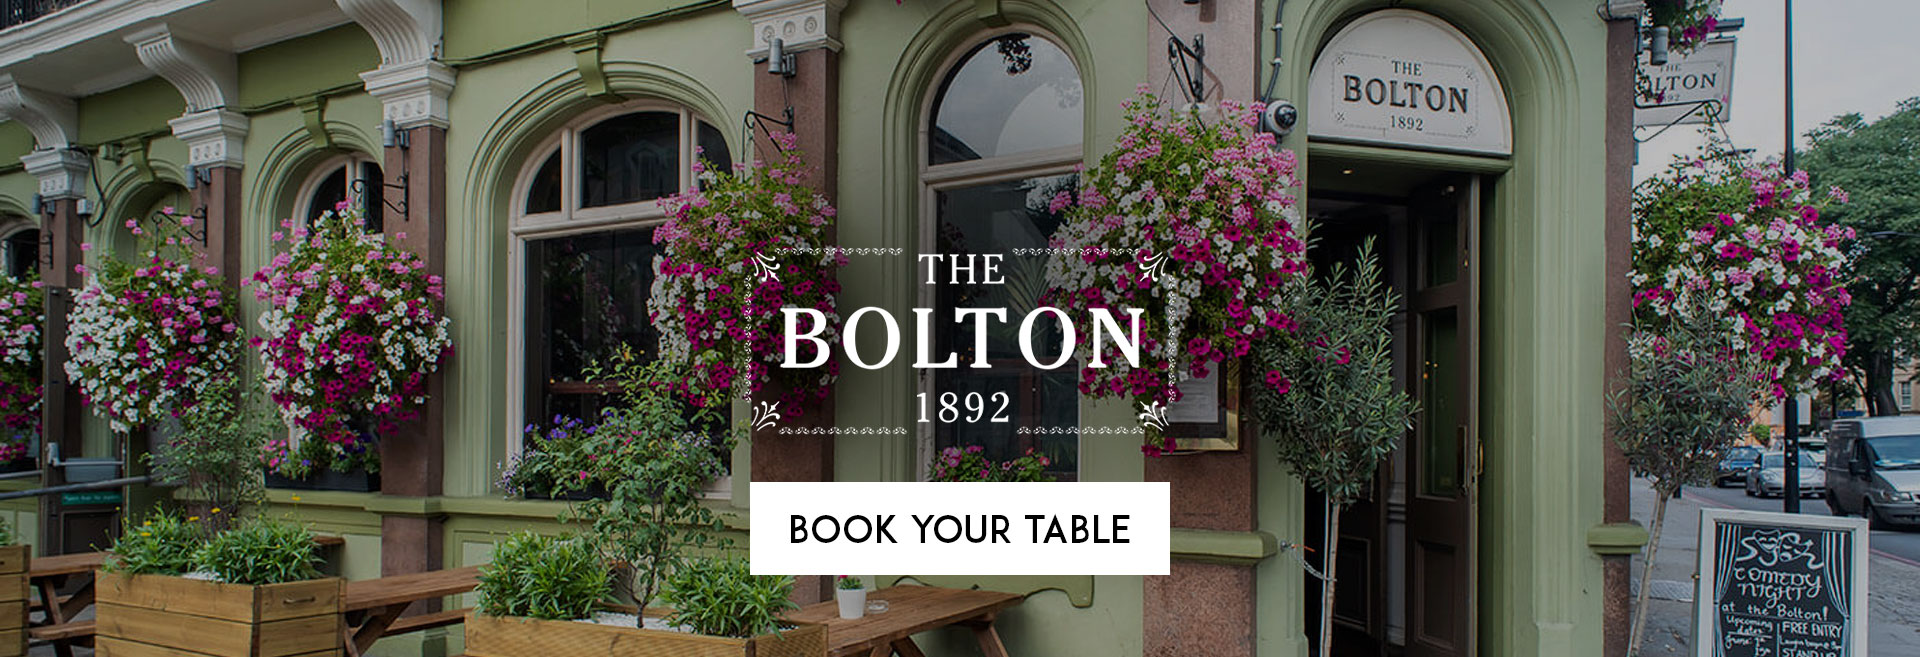 Book Your Table at The Bolton